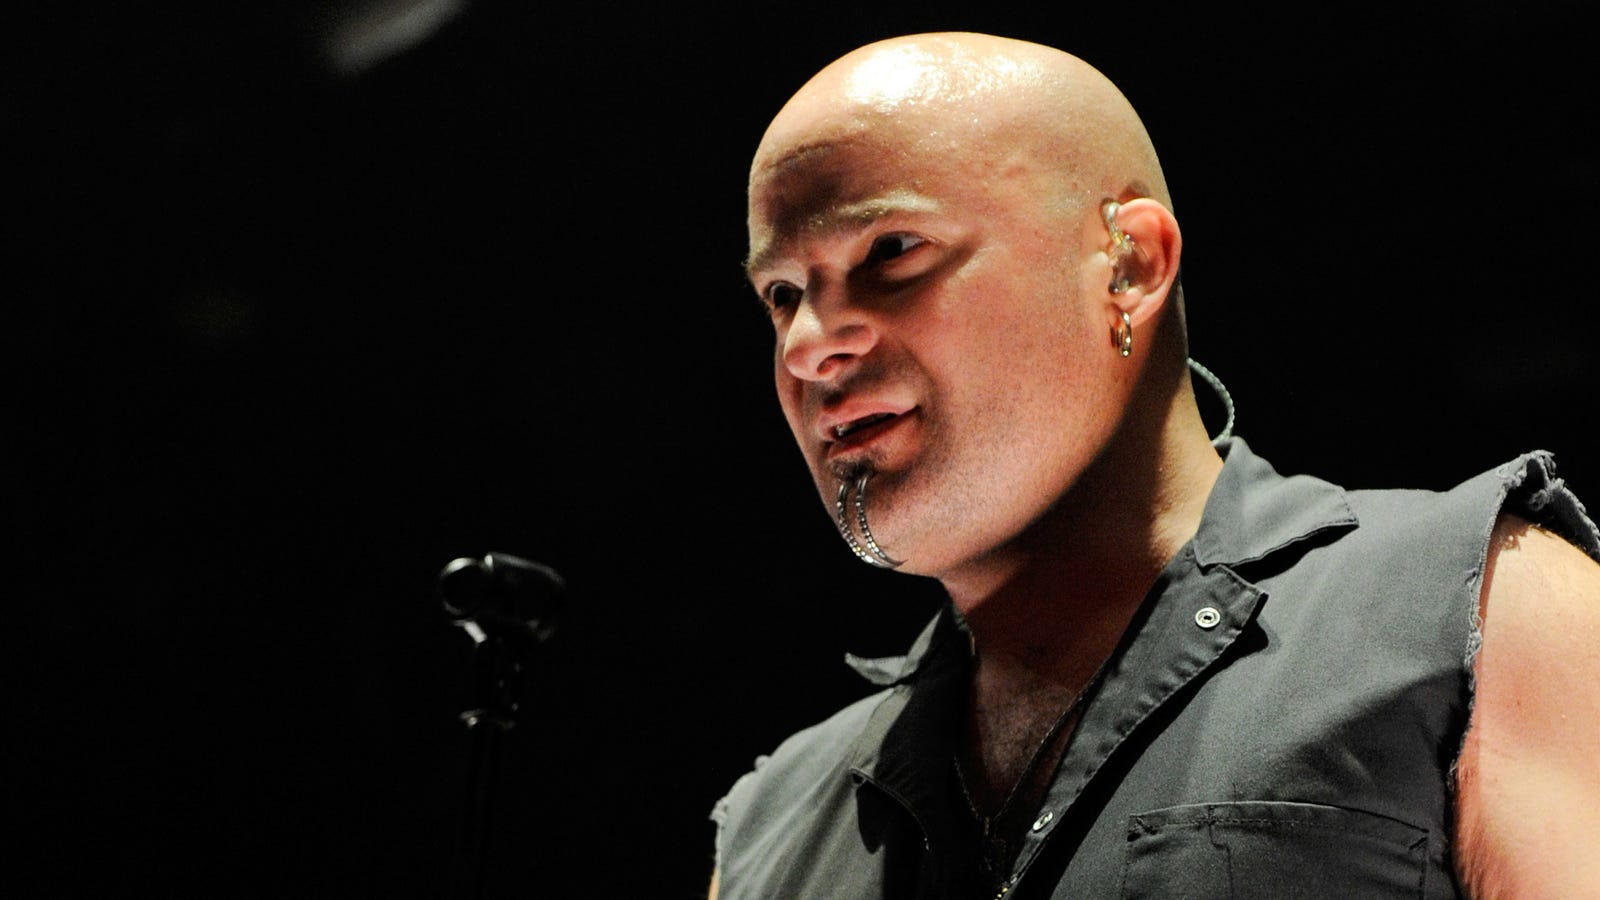 Disturbed singer David Draiman just realized that his chin piercings look a little silly